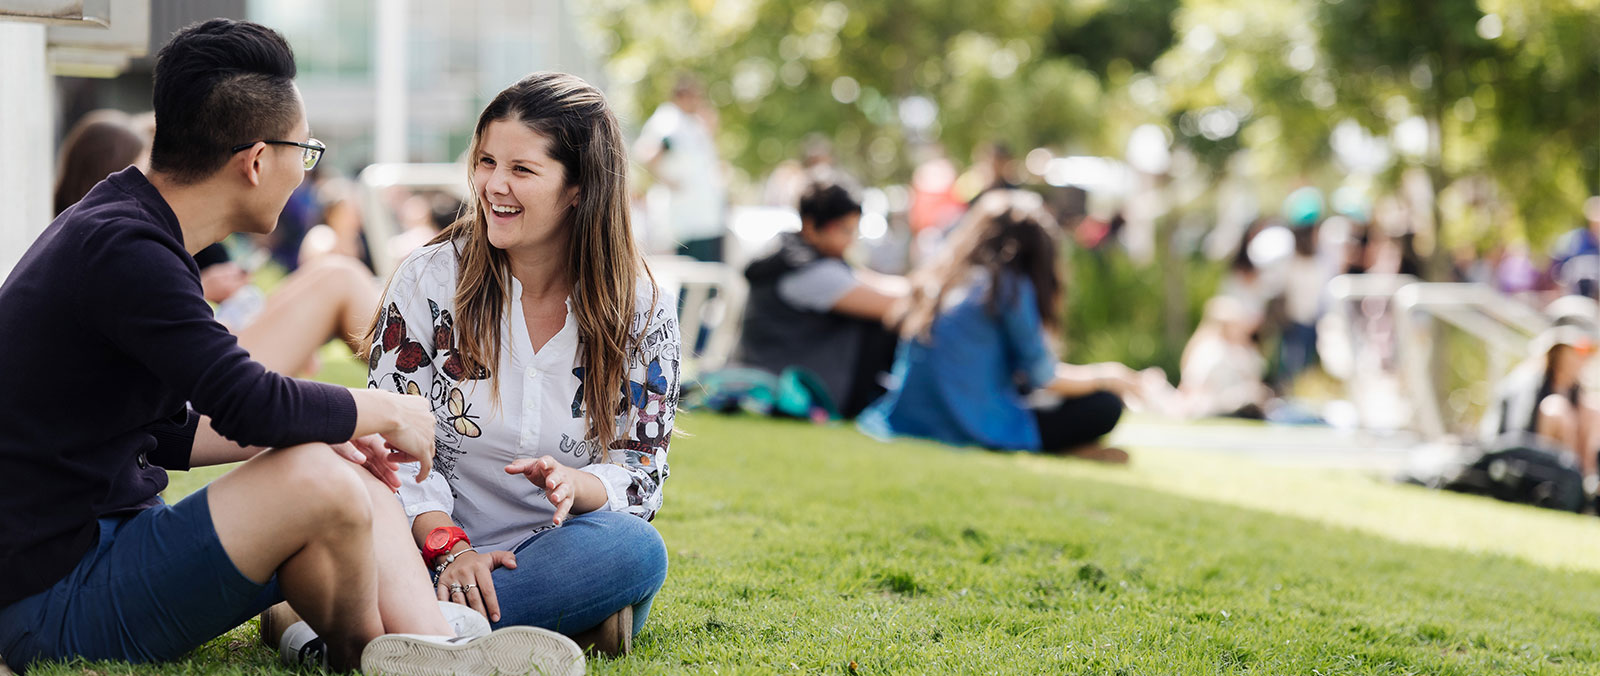 Colombian student laughing with other student sitting on the grass